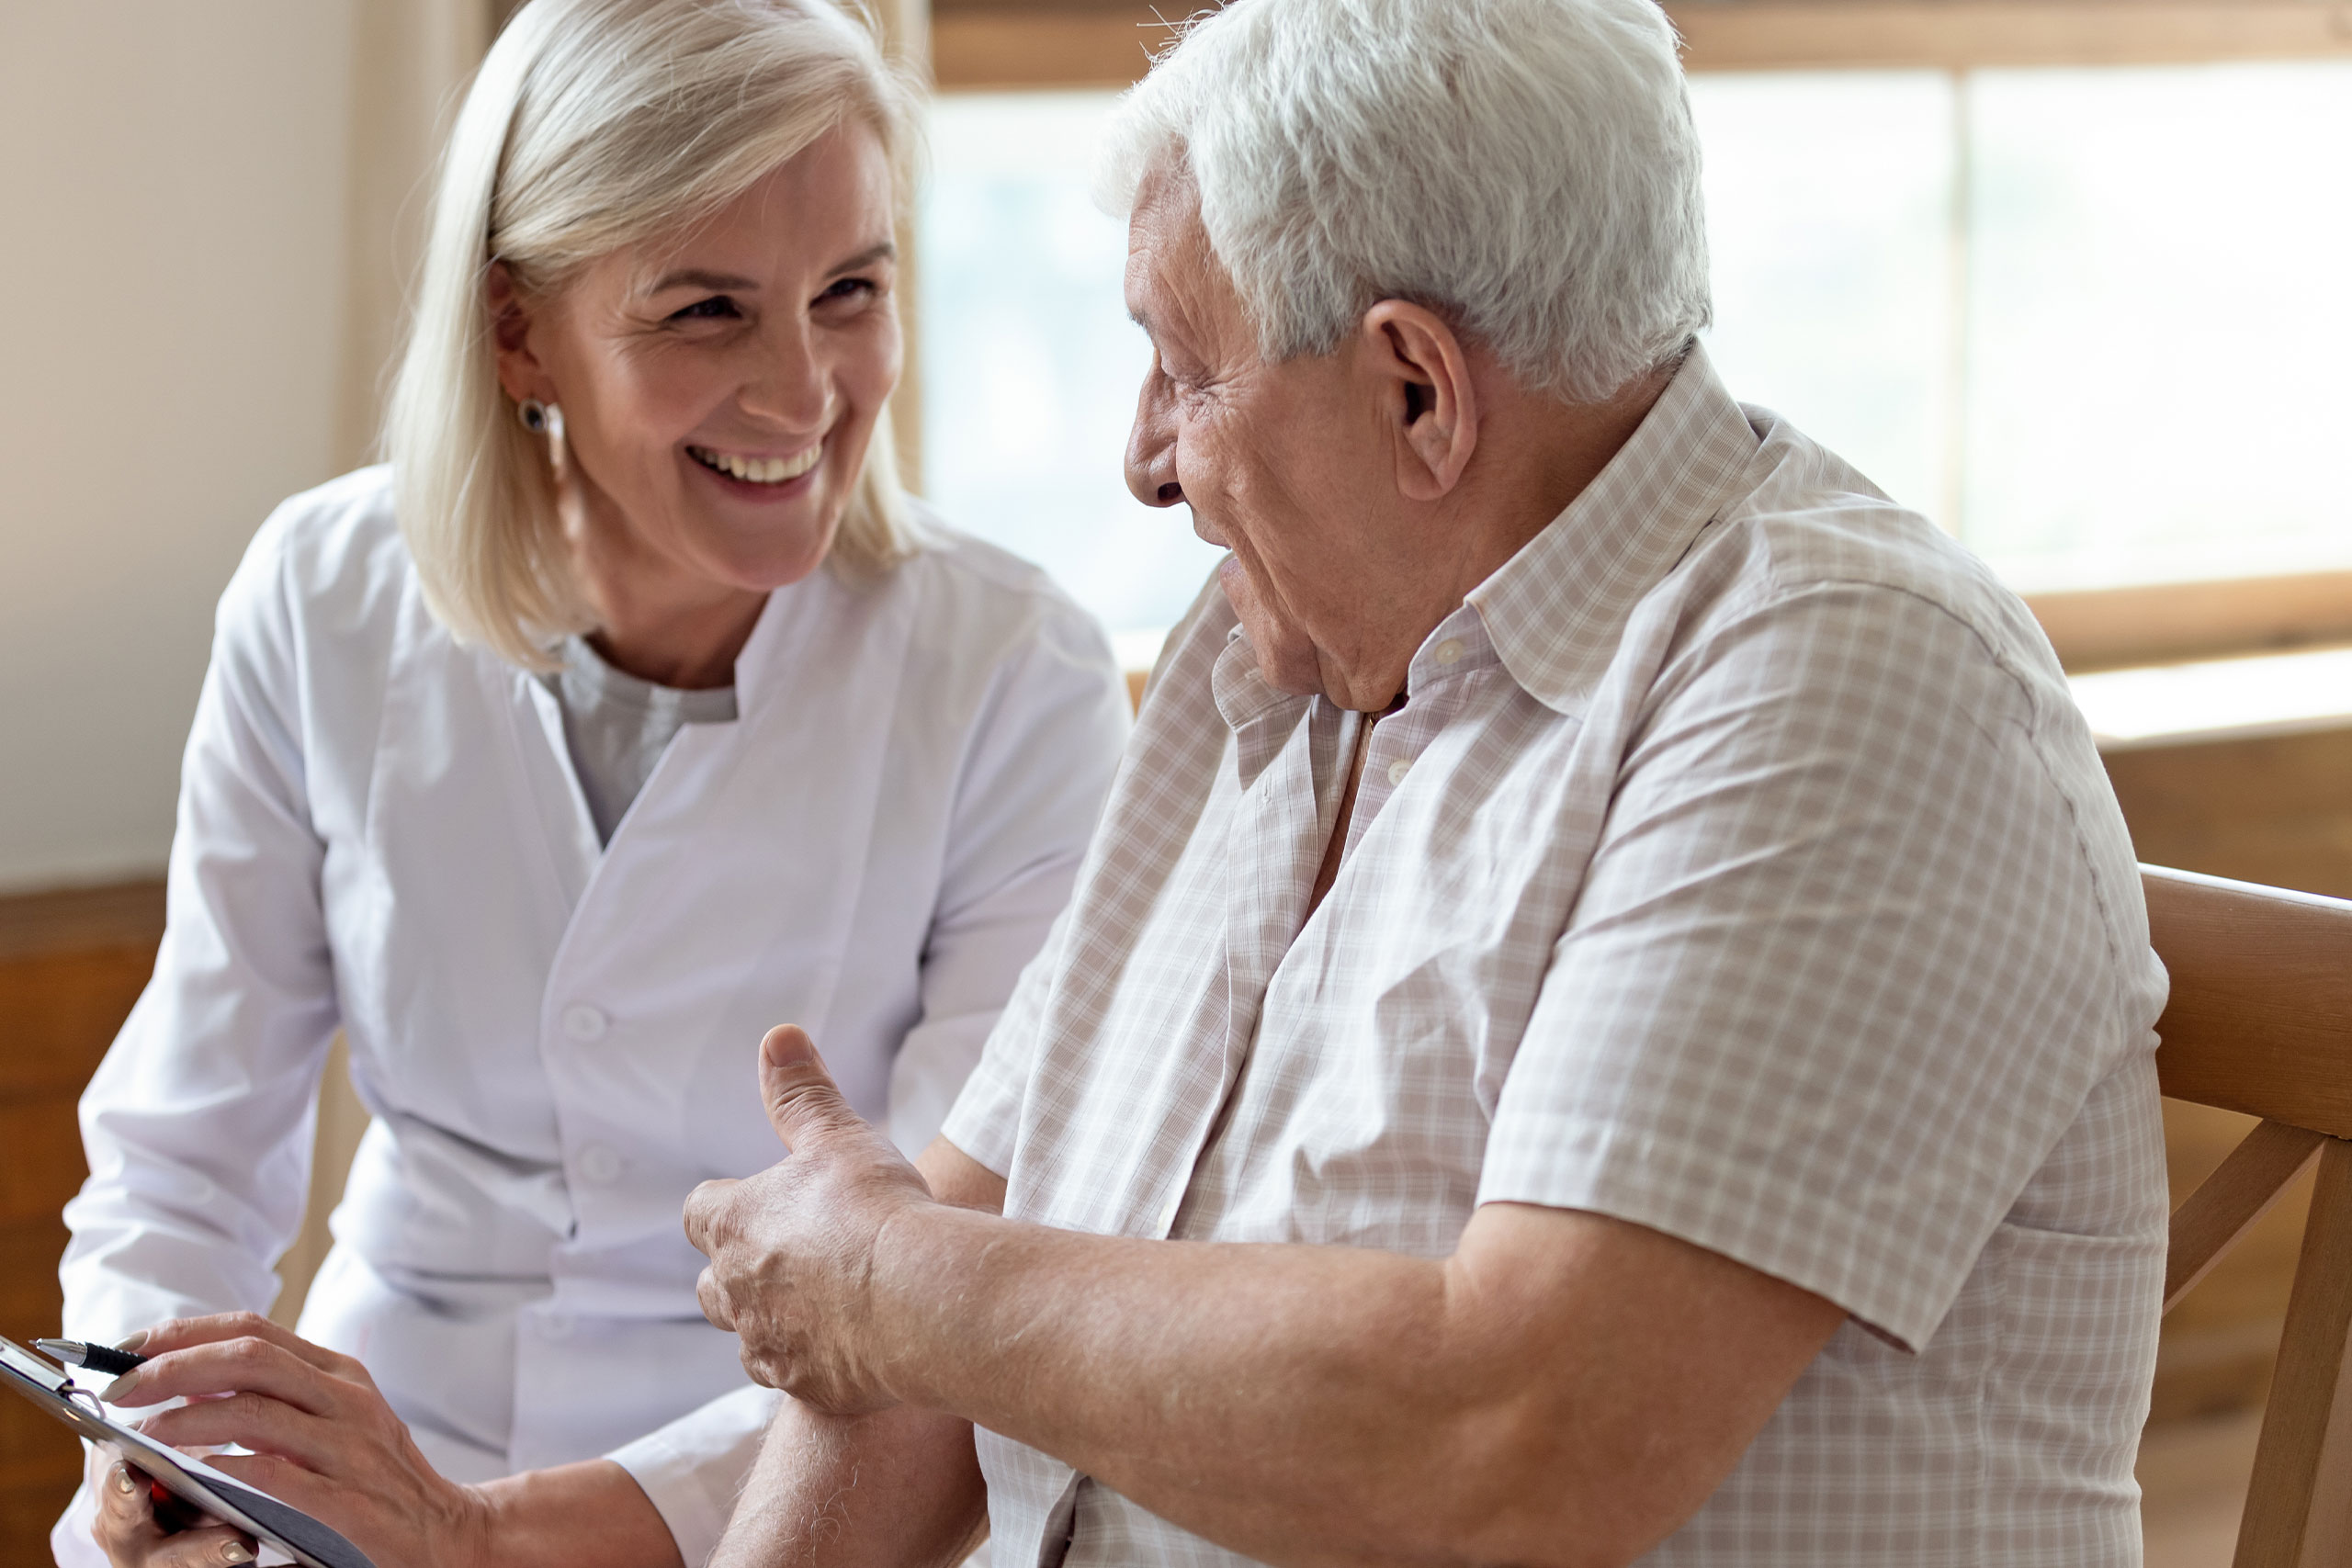 Elderly man and therapist holding clipboard writing personal information having pleasant warm conversation.